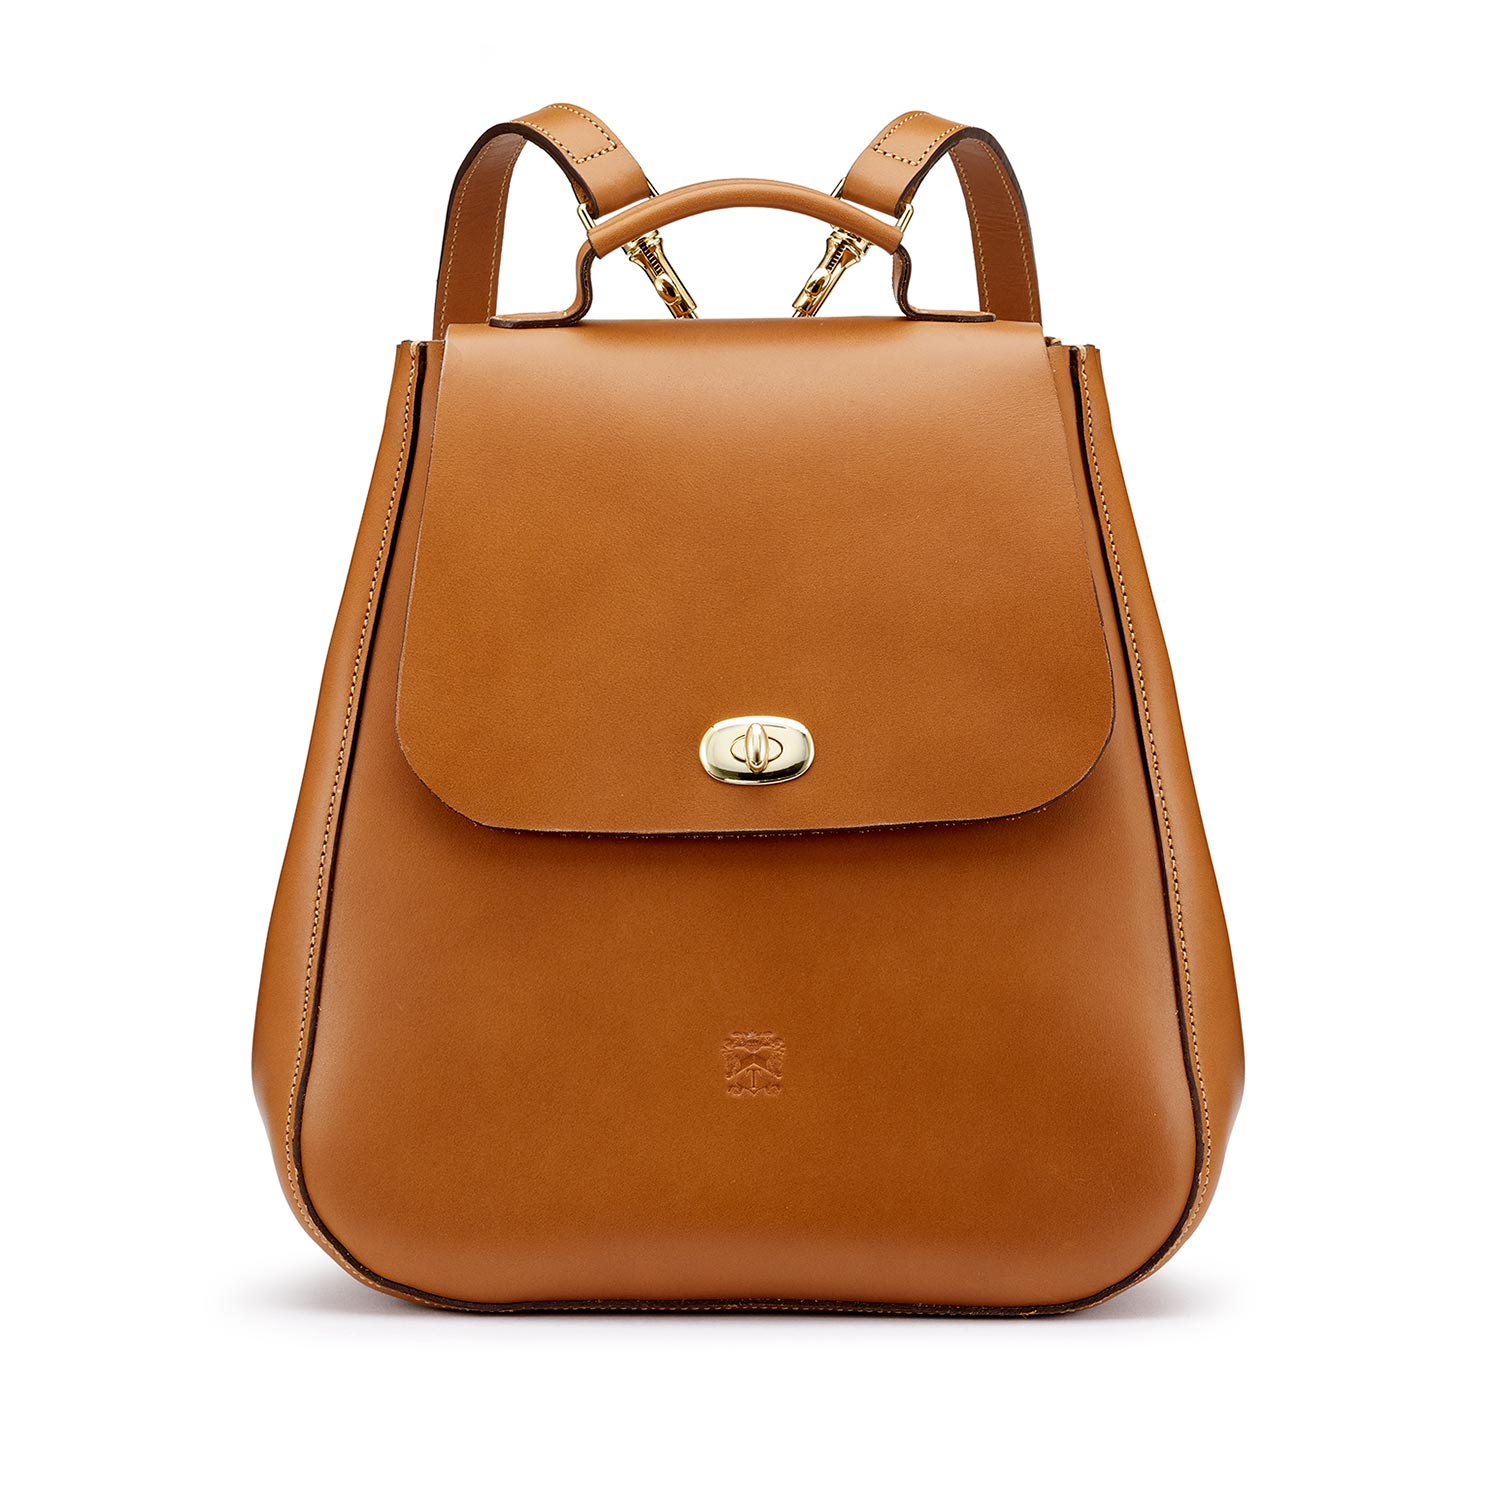 Tusting London Tan Leather Backpack made in britain